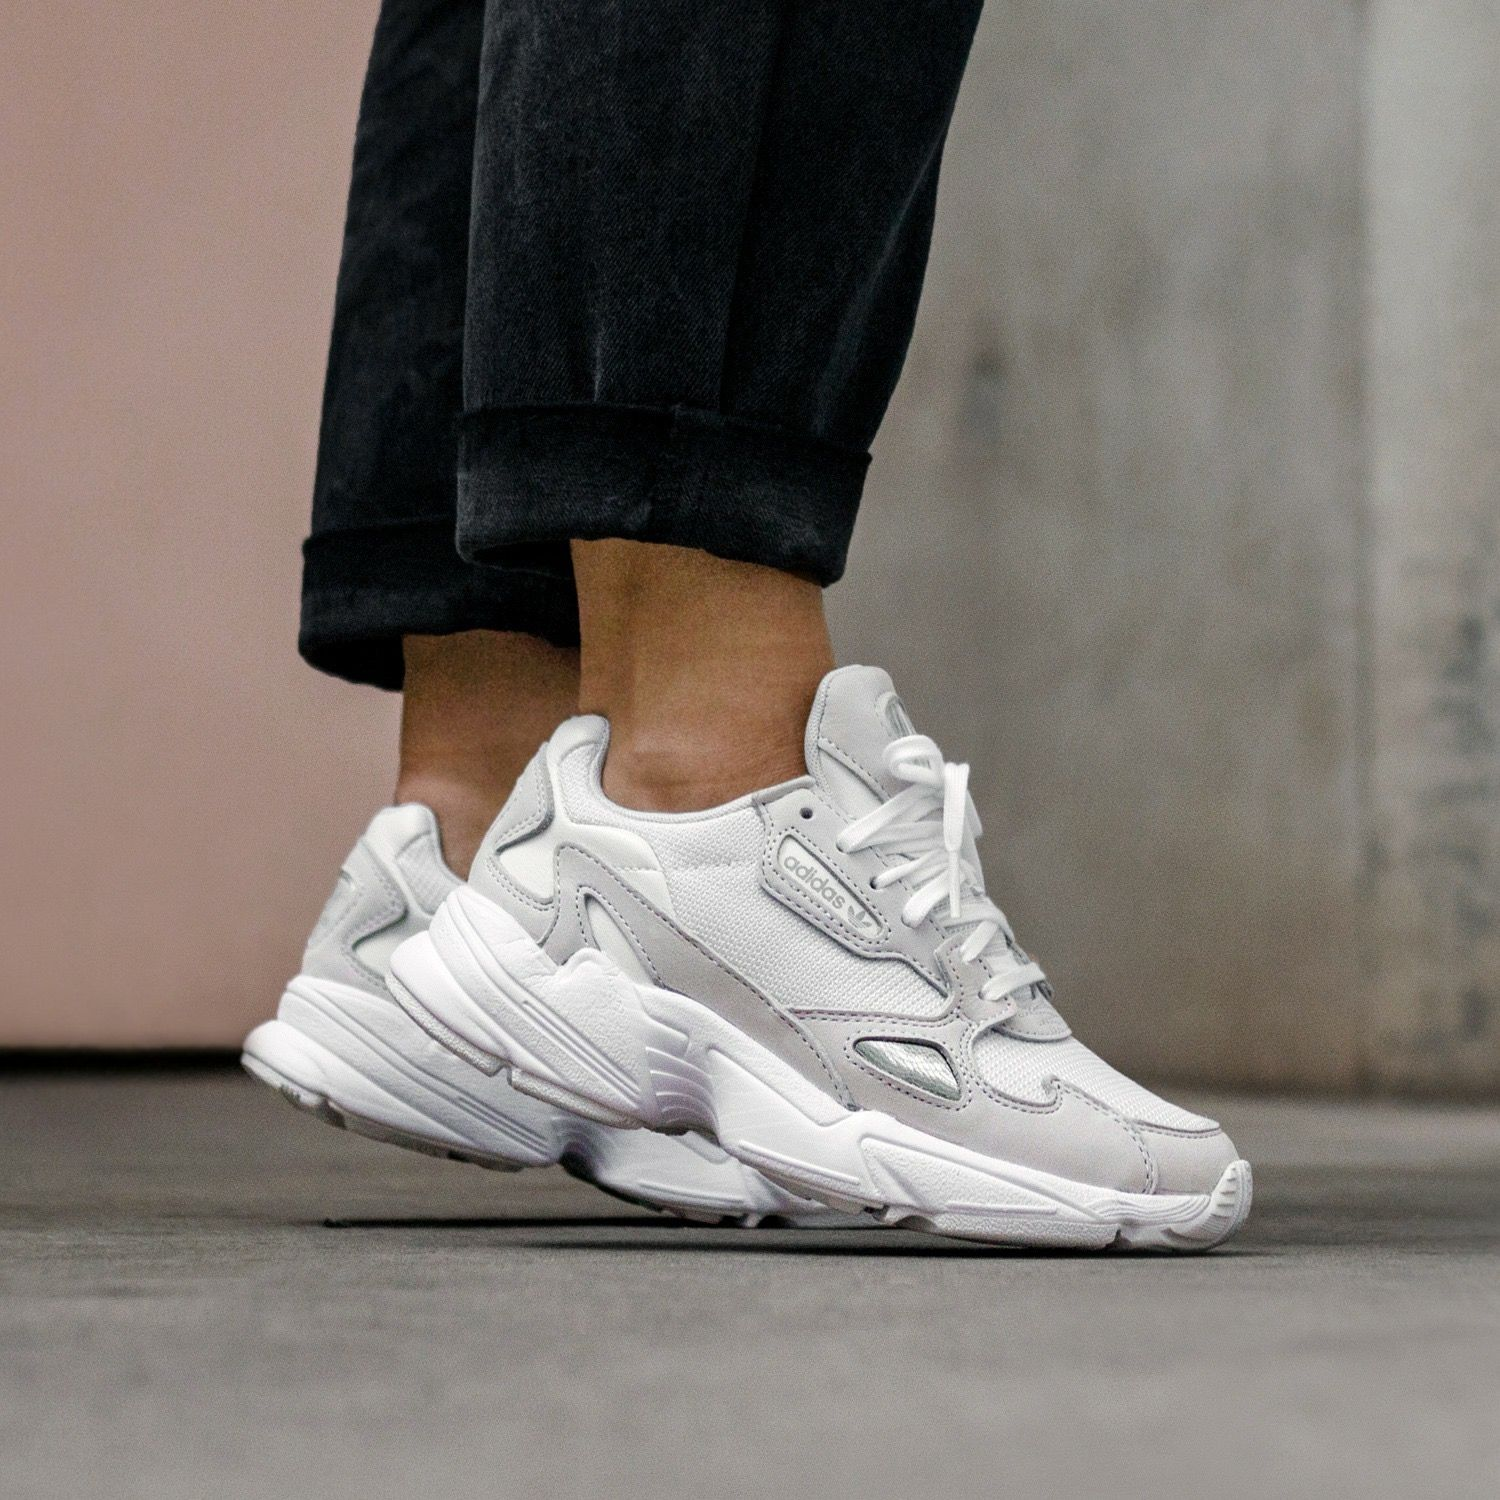 adidas Originals Falcon (With images) | Sneakers, Sneakers ...